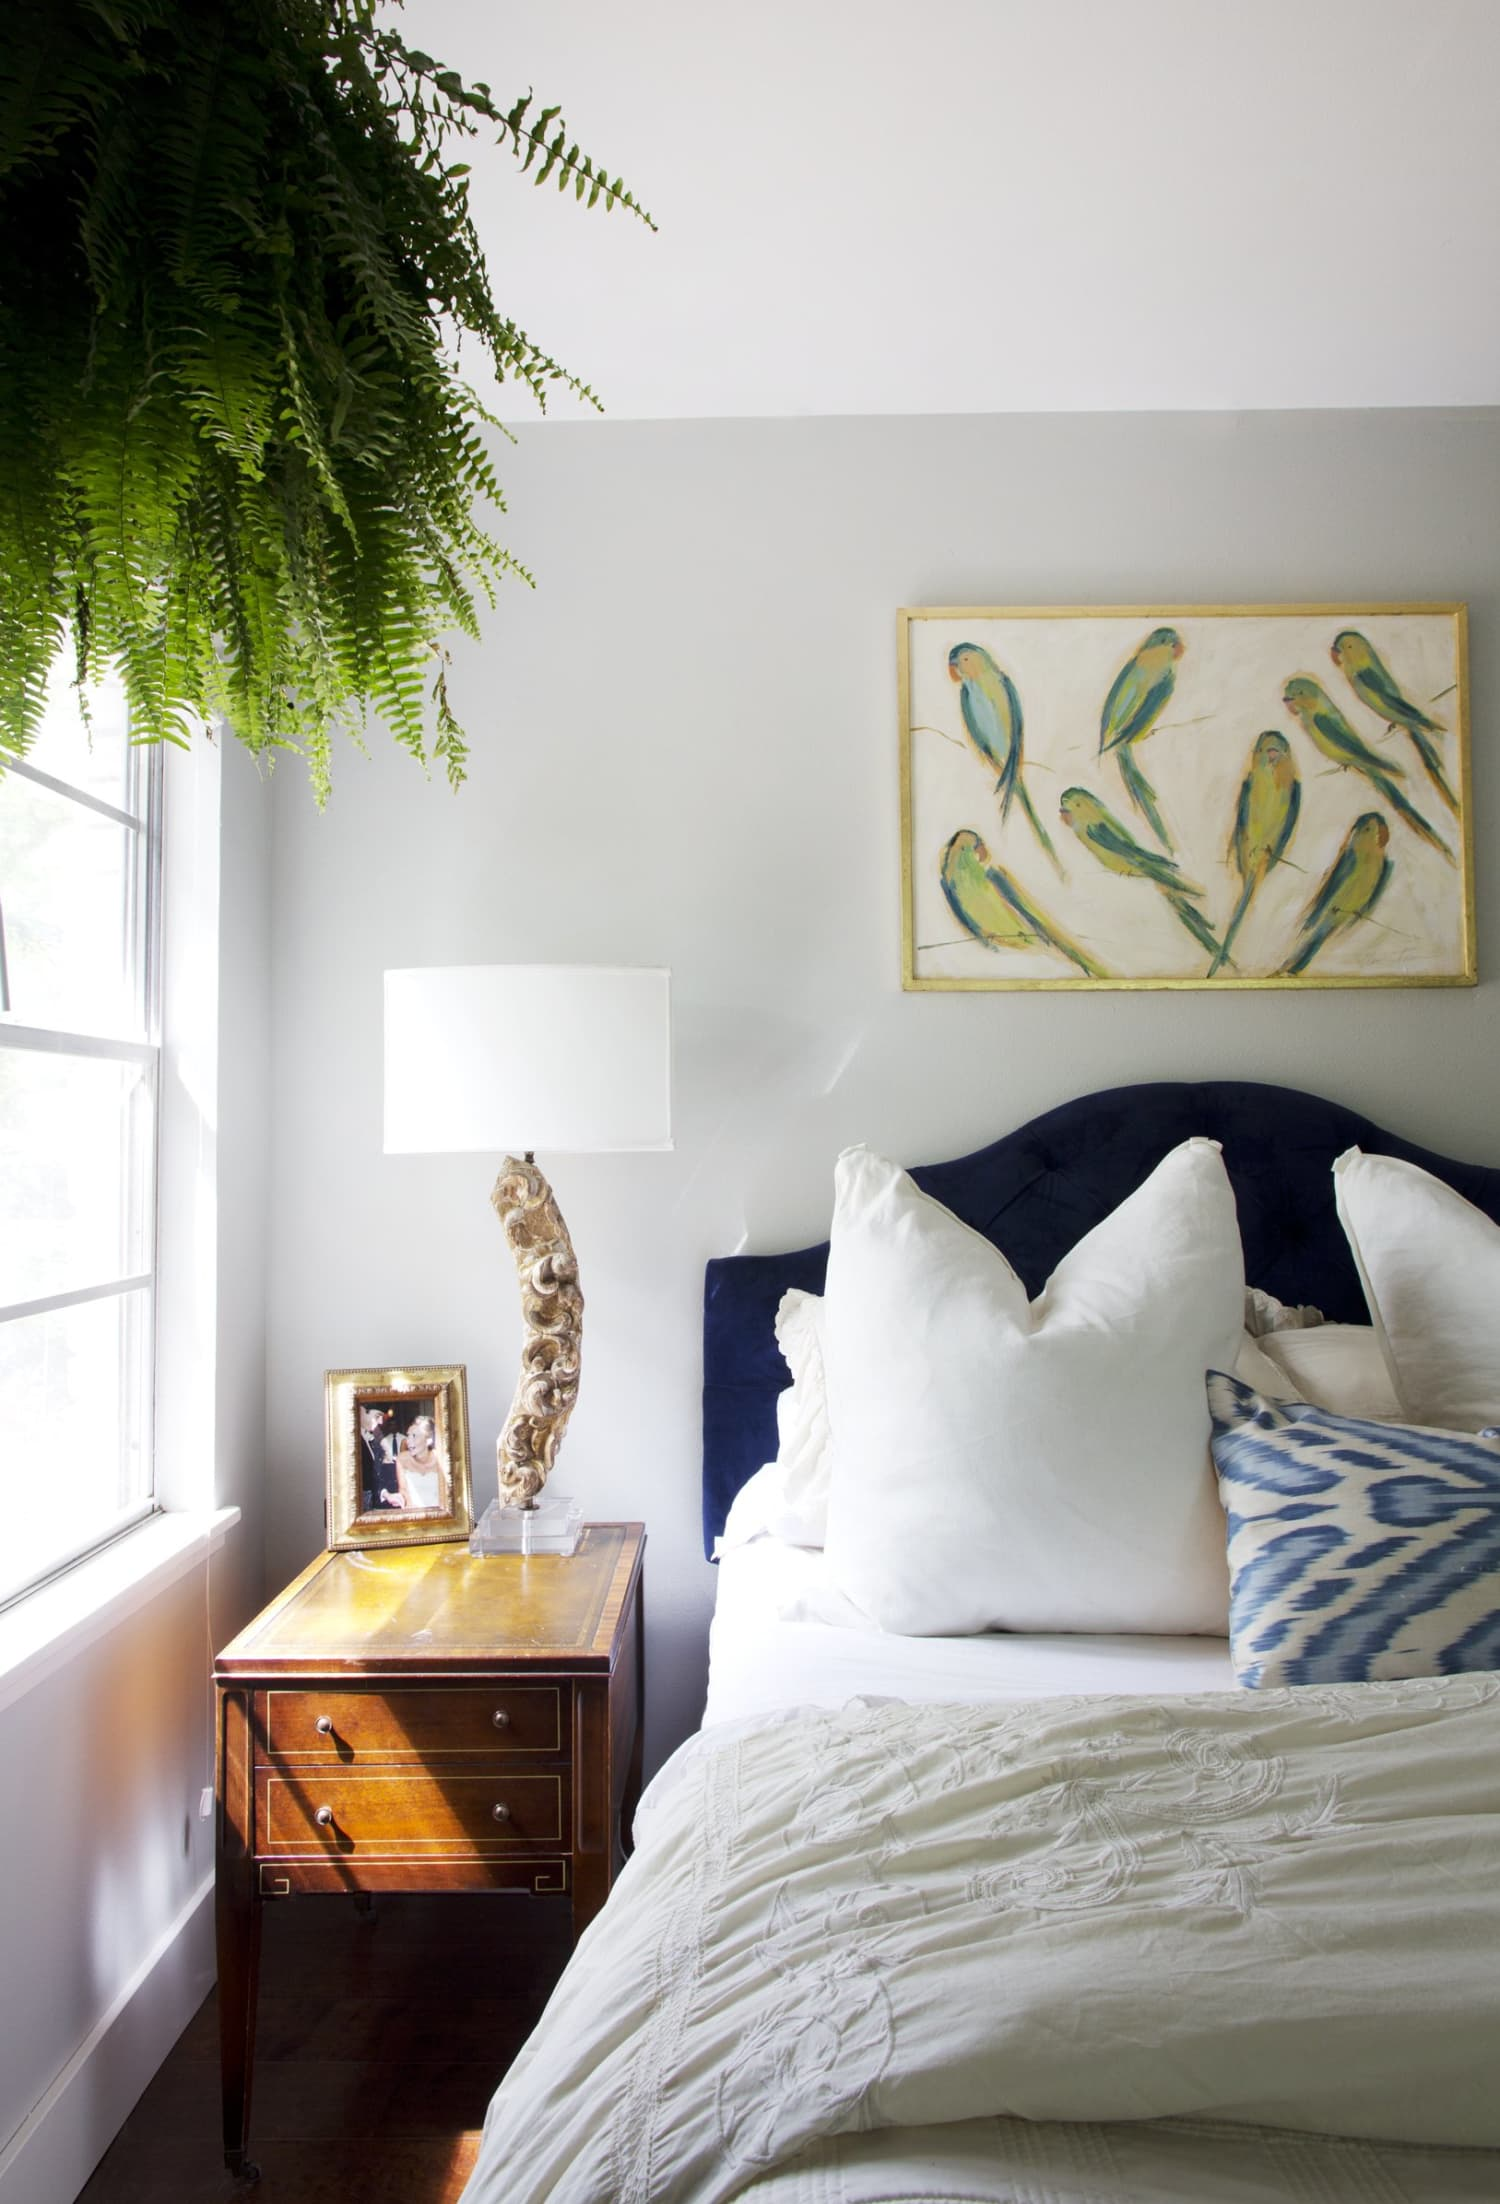 7 Outrageous (But Worth It!) Design Ideas for Your Bedroom